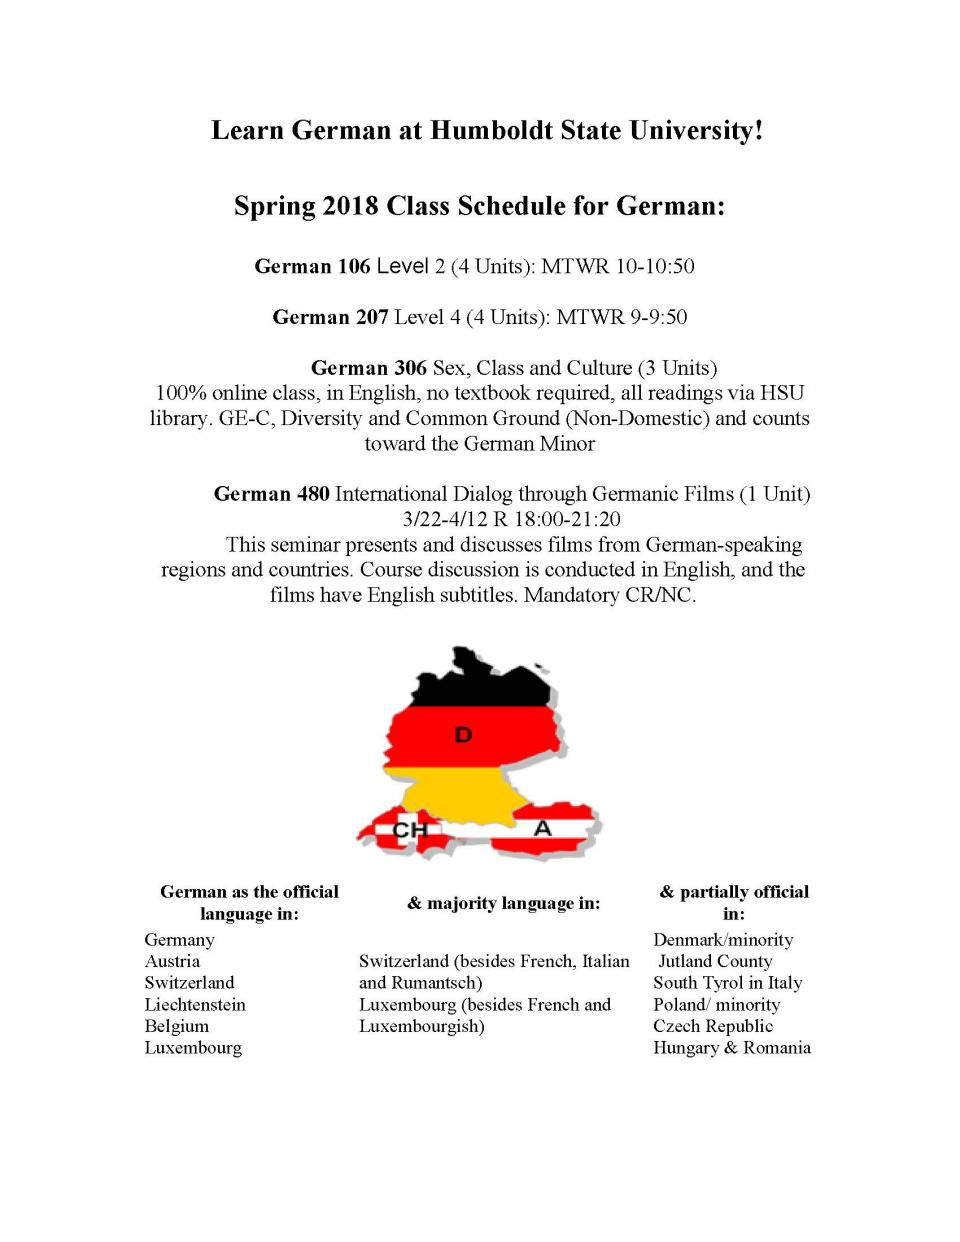 German classes spring 18 flyer